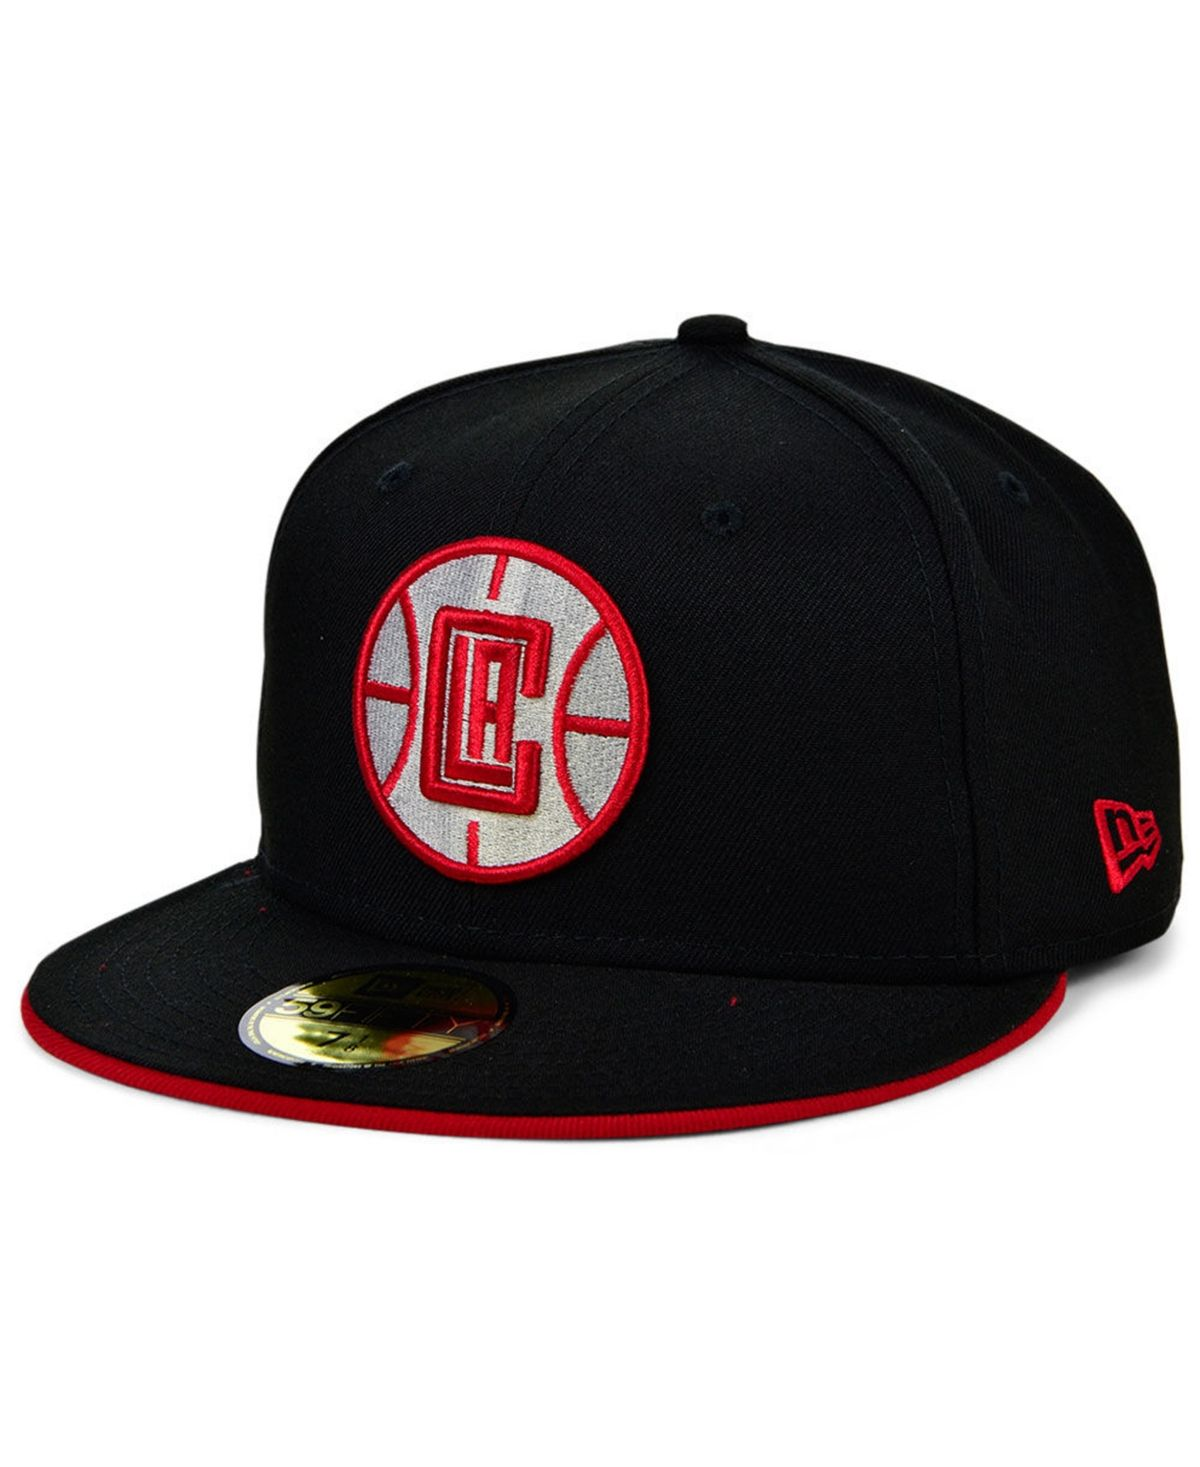 New Era Los Angeles Clippers Bred Collection 59fifty Fitted Cap Reviews Sports Fan Shop By Lids Men Macy S In 2021 Hats For Men New Era Los Angeles Clippers